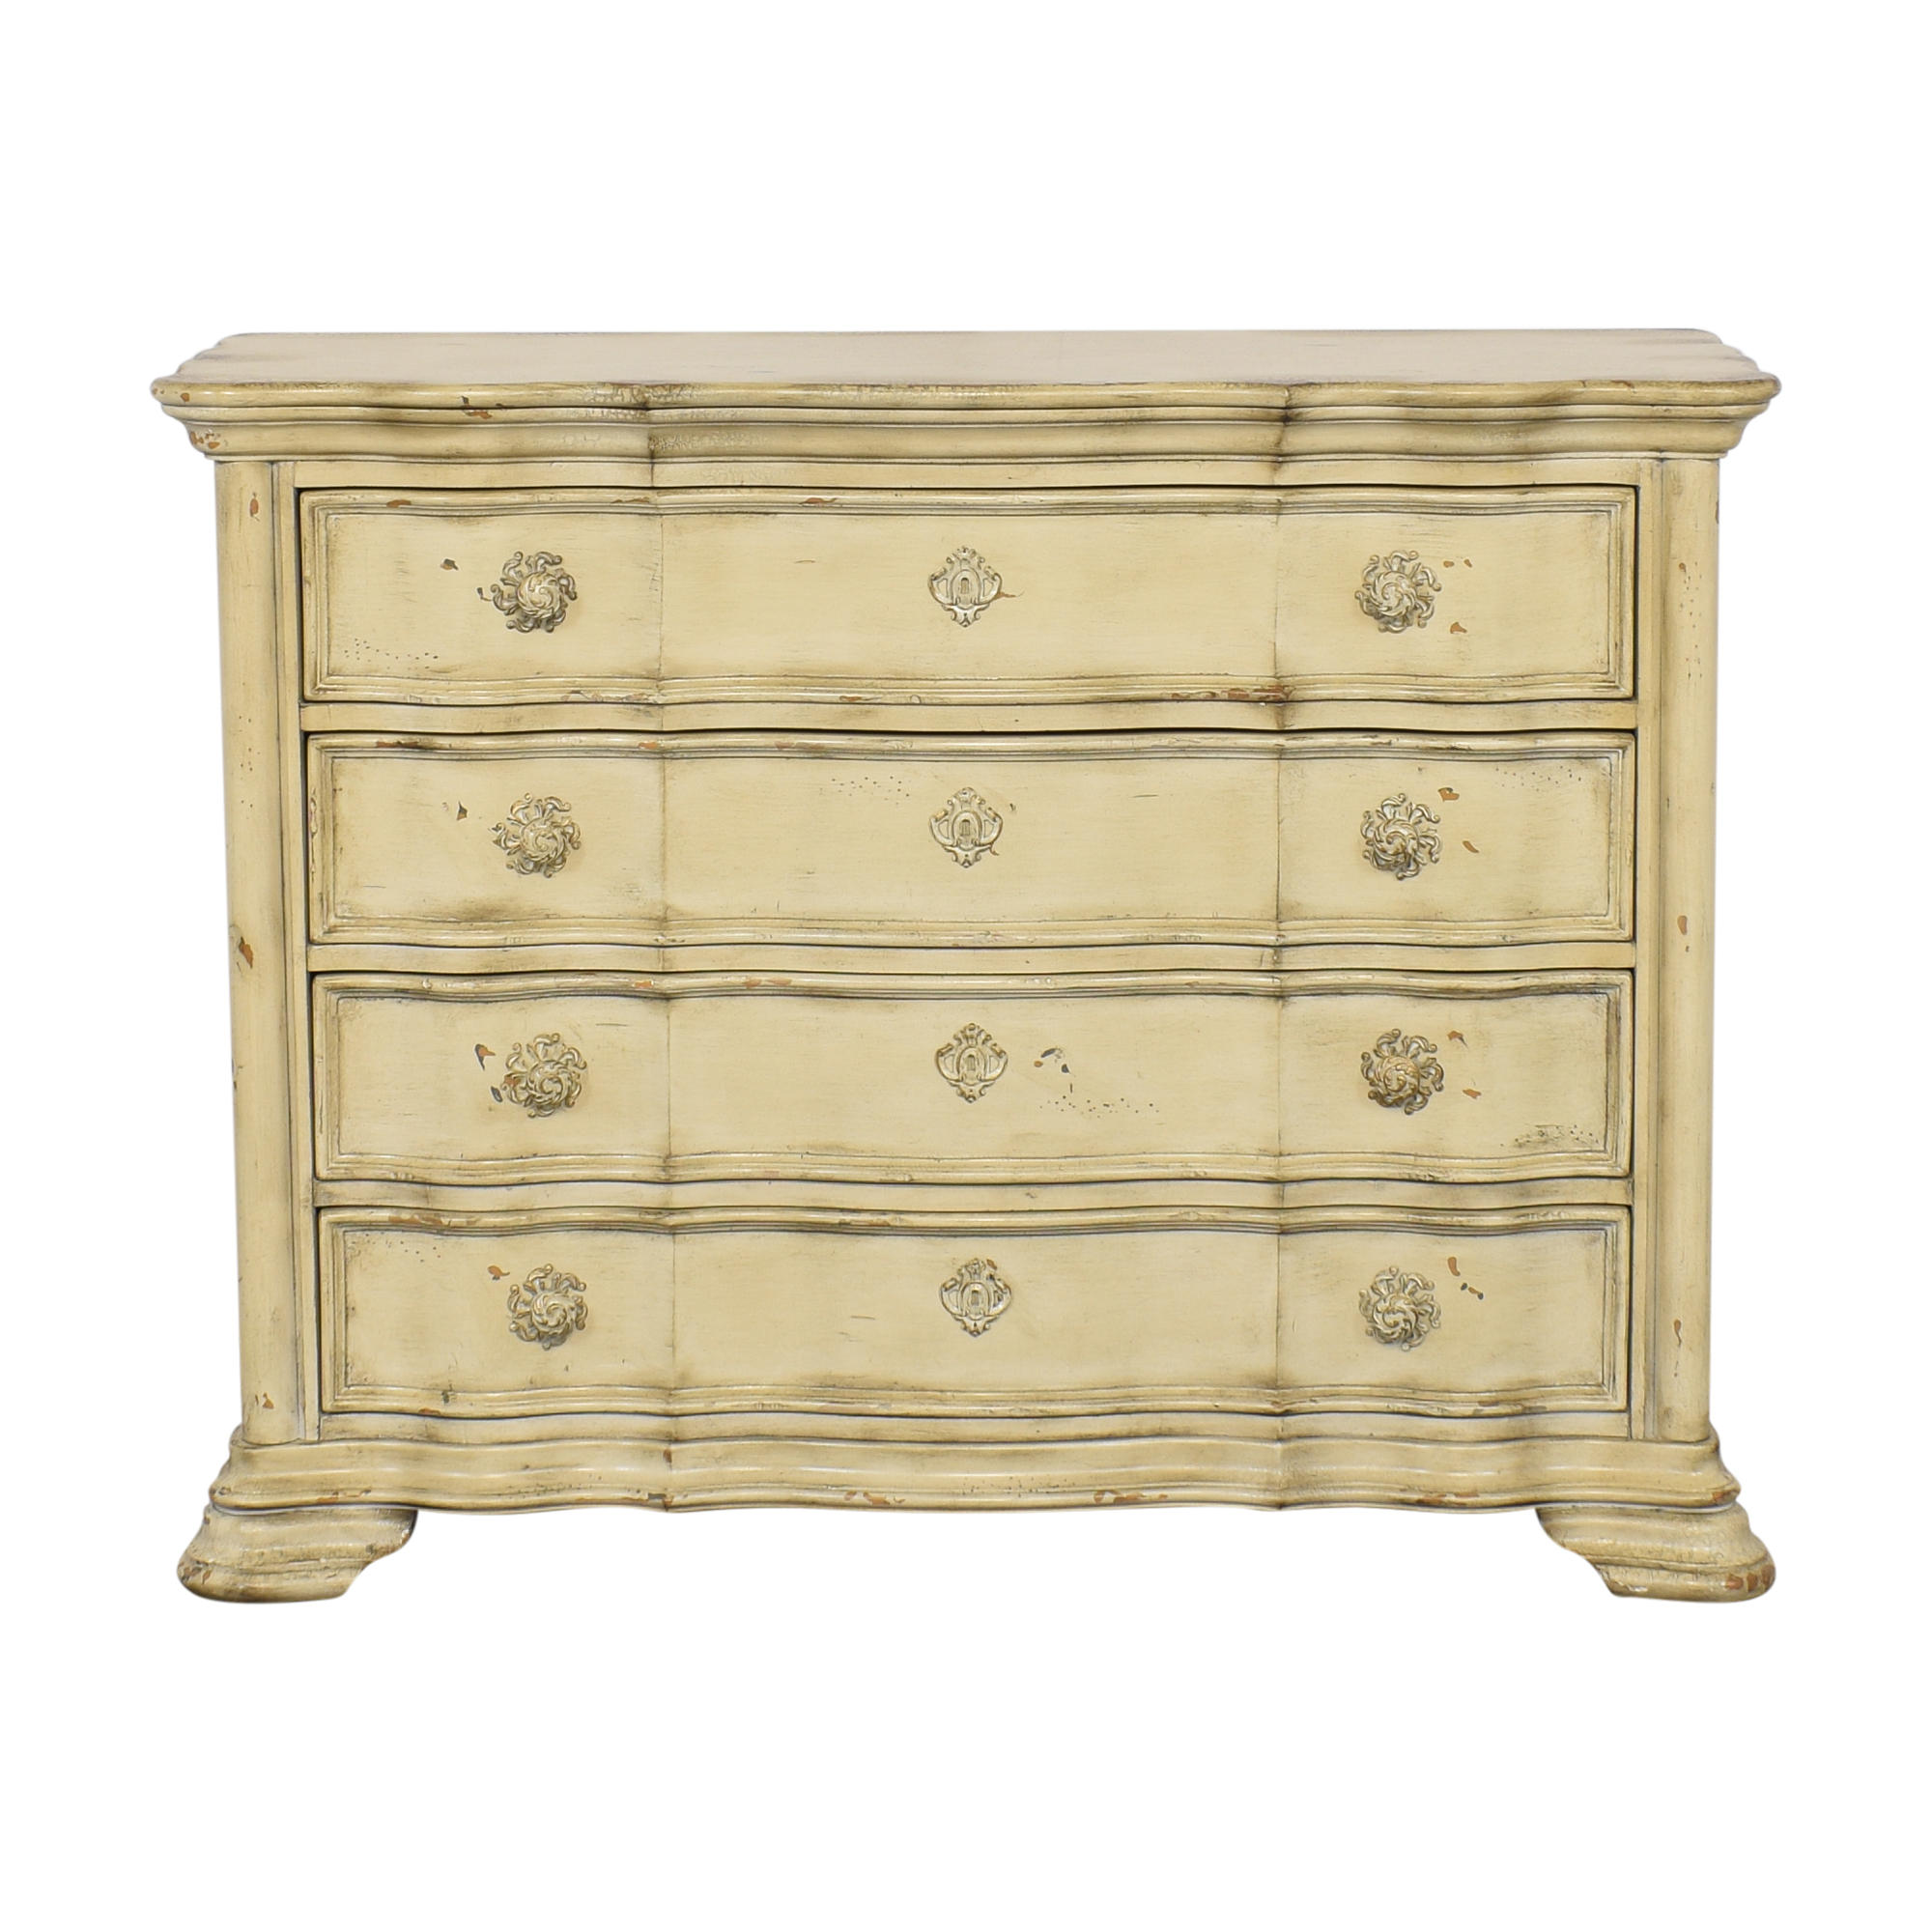 Pulaski Furniture Pulaski Furniture Four Drawer Dresser ma